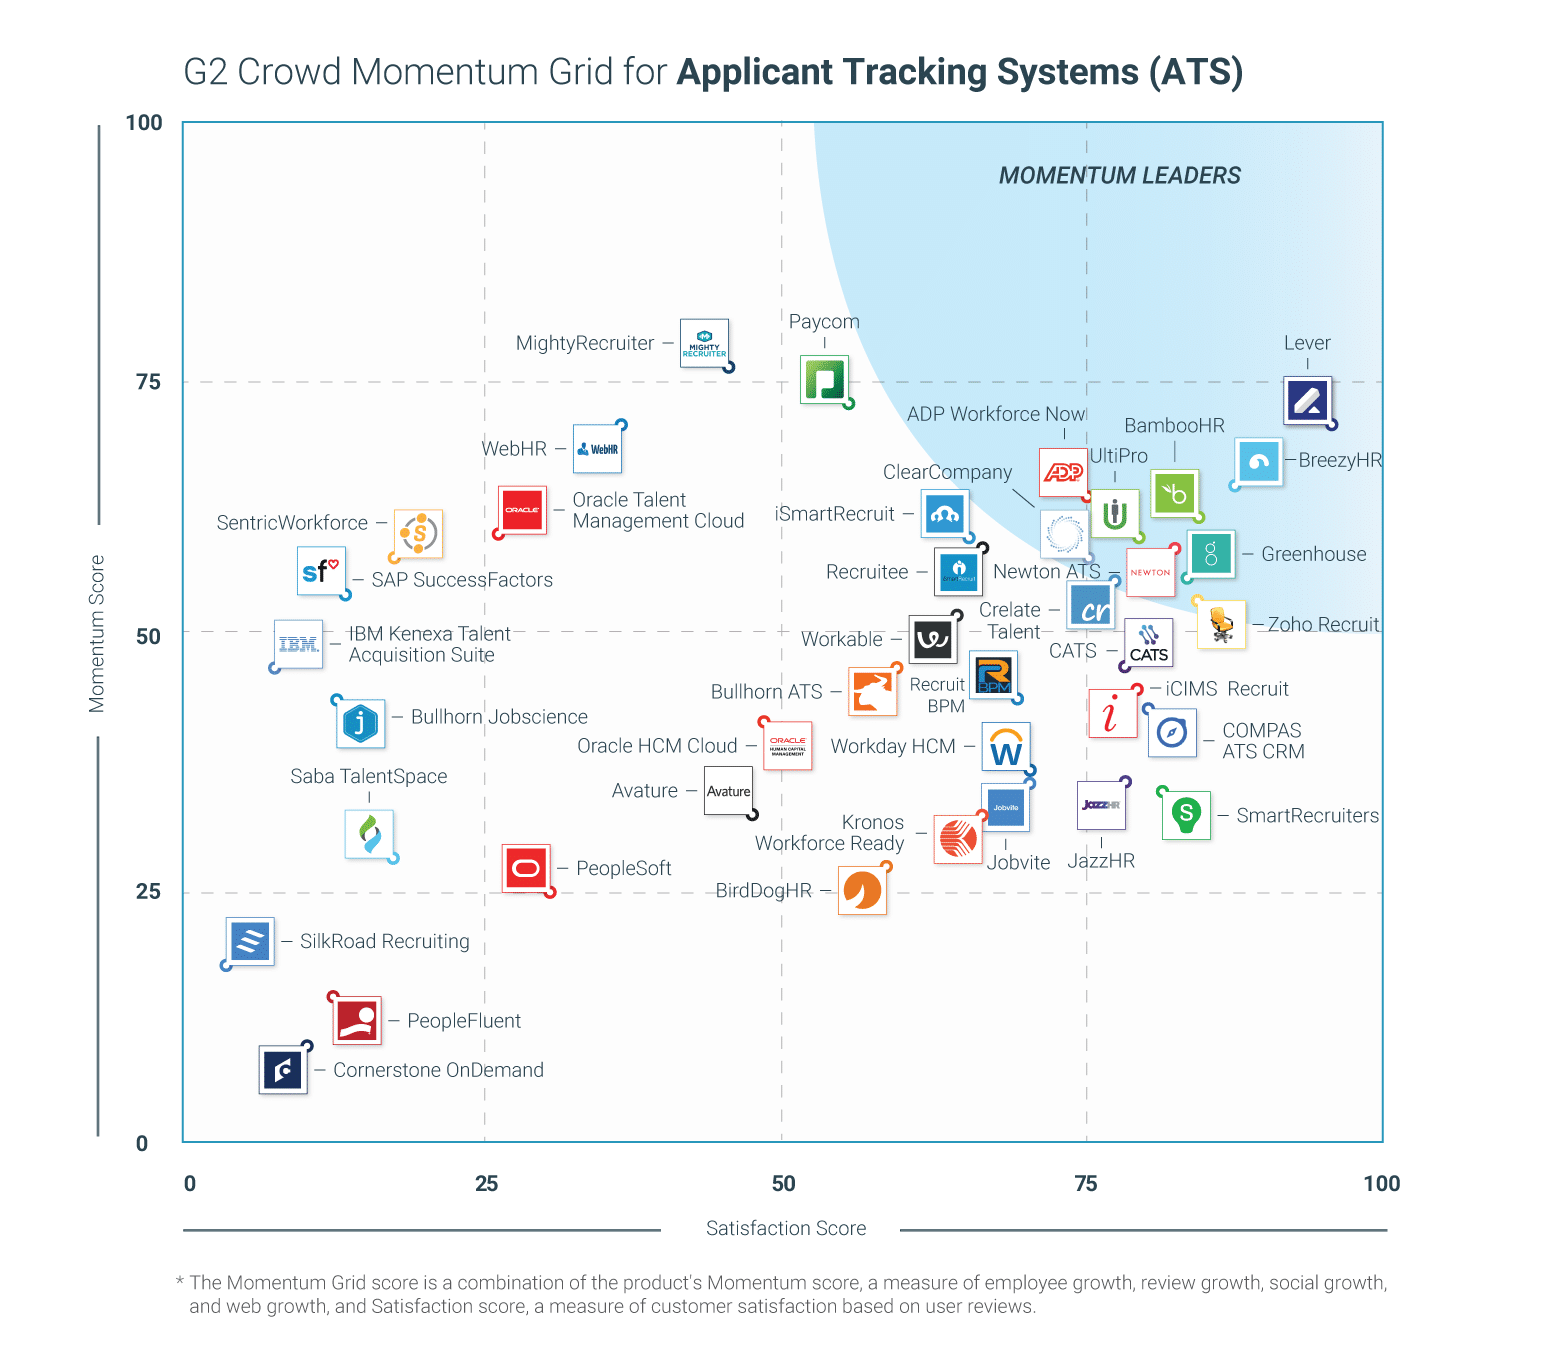 G2 Crowd ATS Momentum Report - Winter 2019